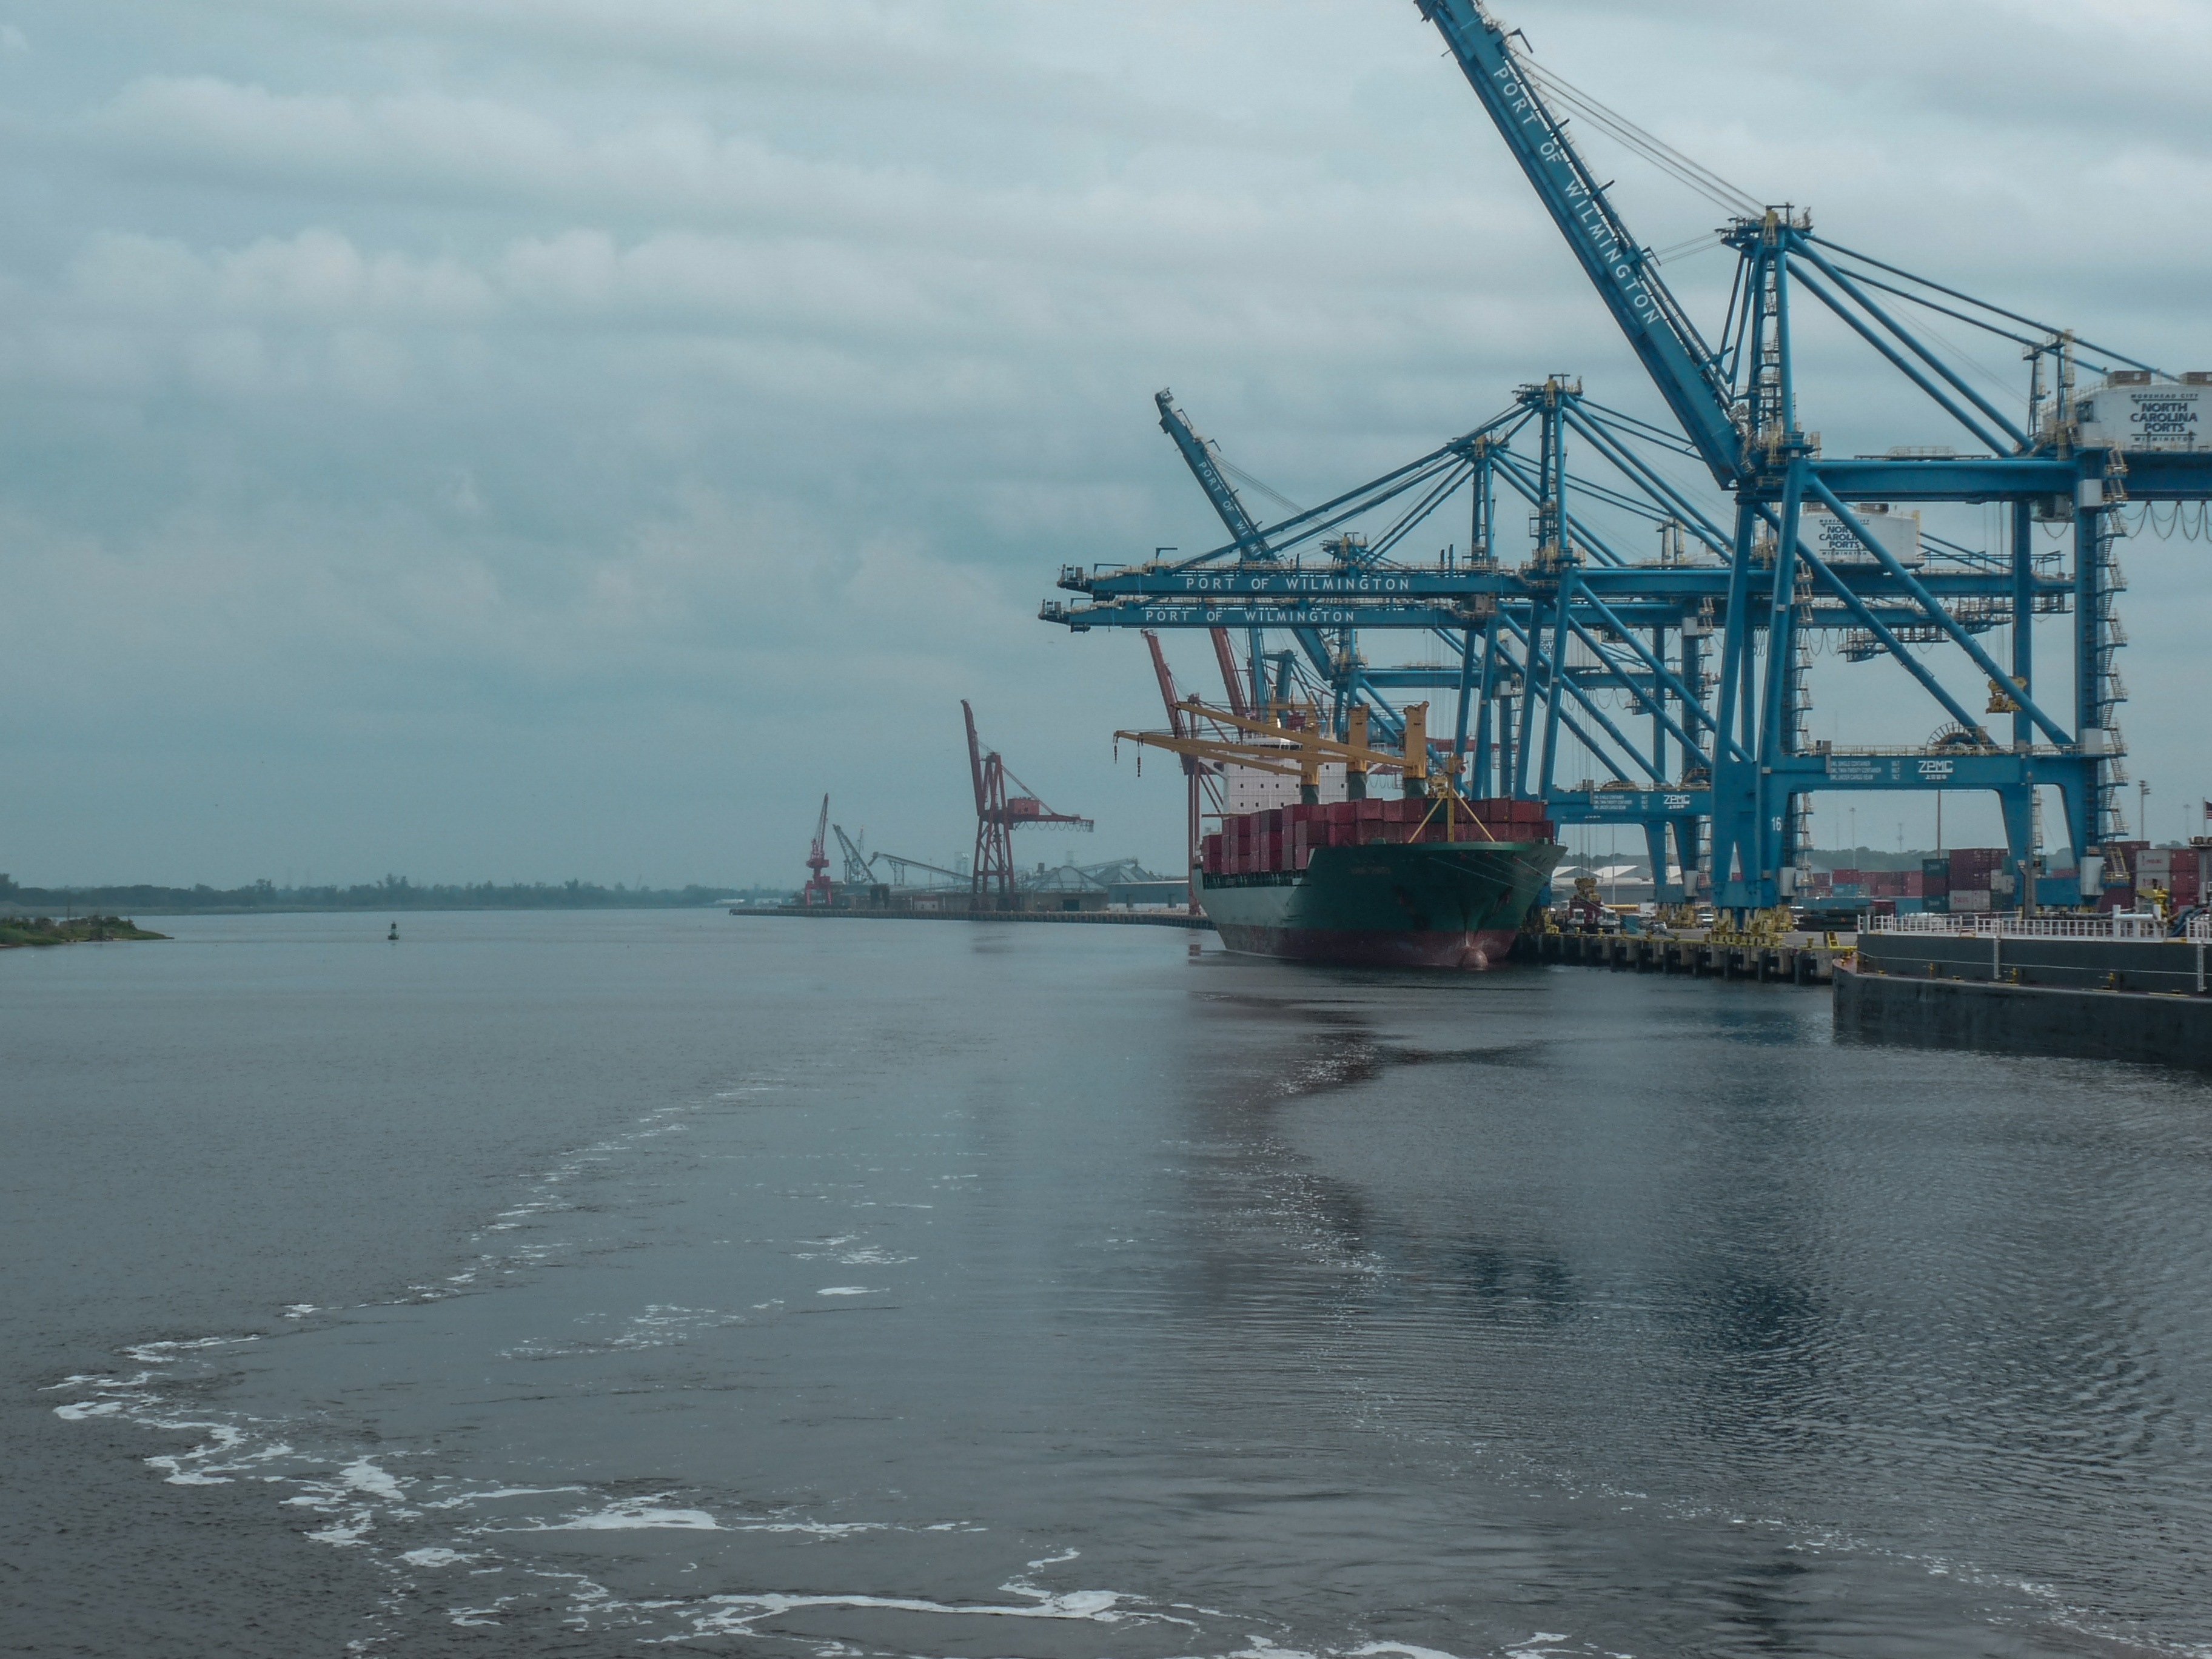 From the deck of the Henrietta II approaching the seaport at Wilmington, NC with view of cranes, docks and and ocean going container ship unloading cargo